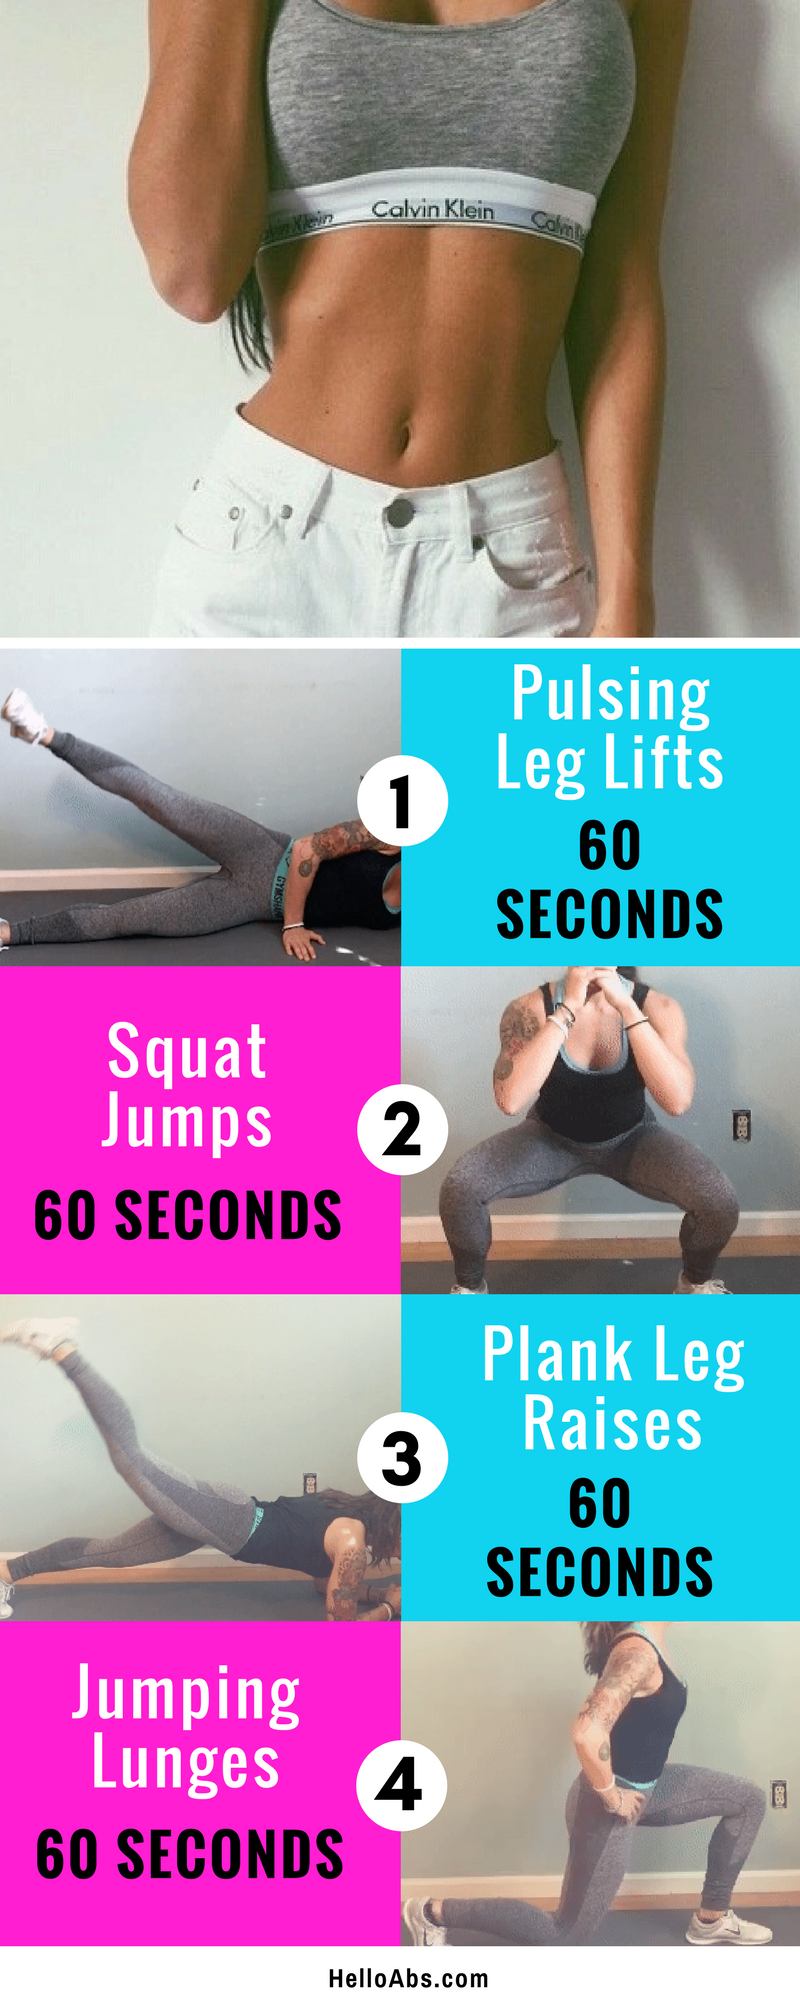 4 Exercises To Lose Belly Fat In 1 Week Health Belly Fat Workout